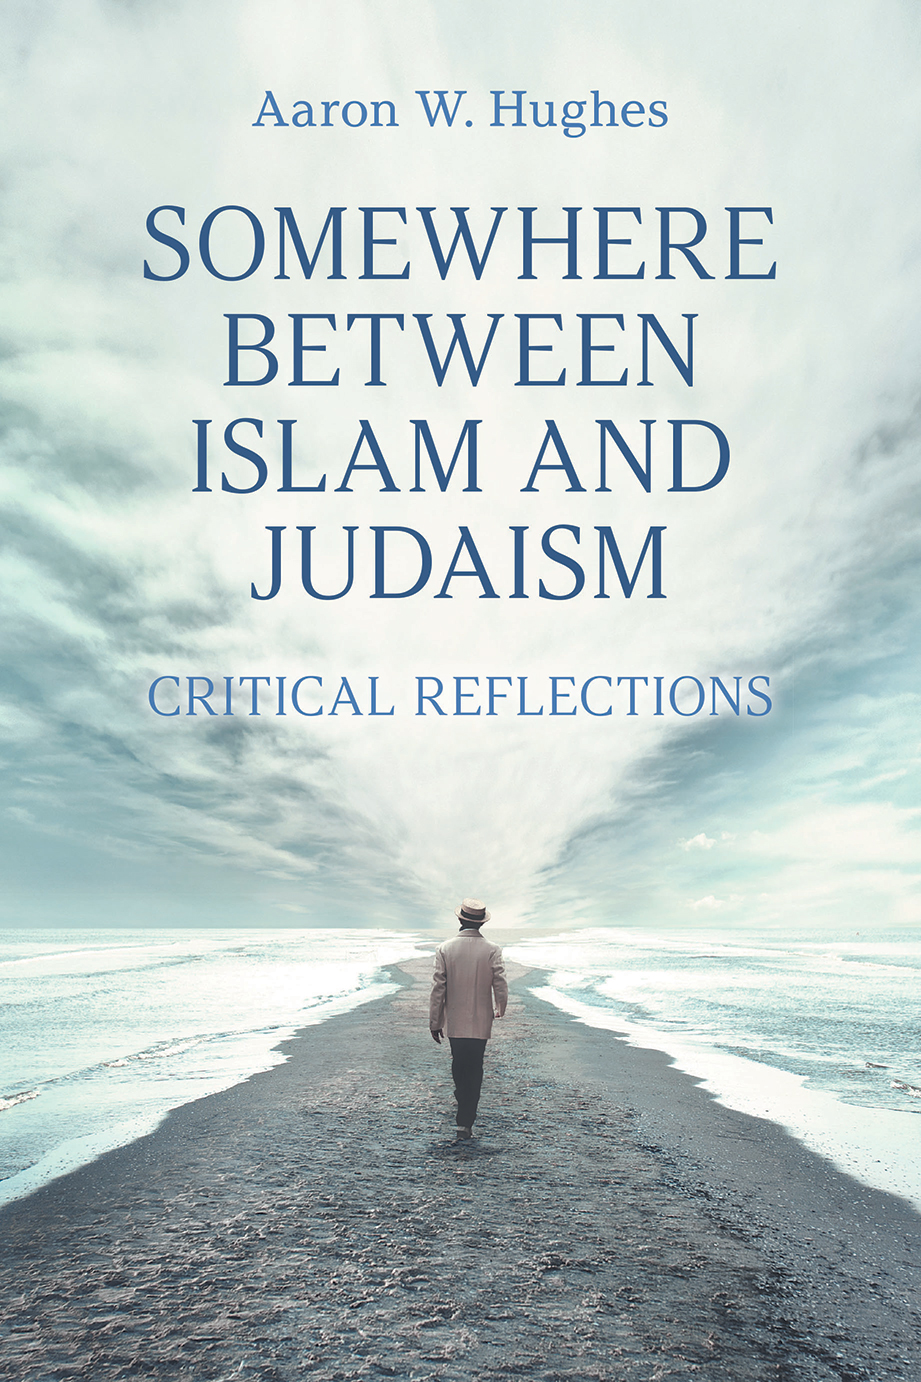 Somewhere Between Islam and Judaism - Critical Reflections - Aaron W. Hughes